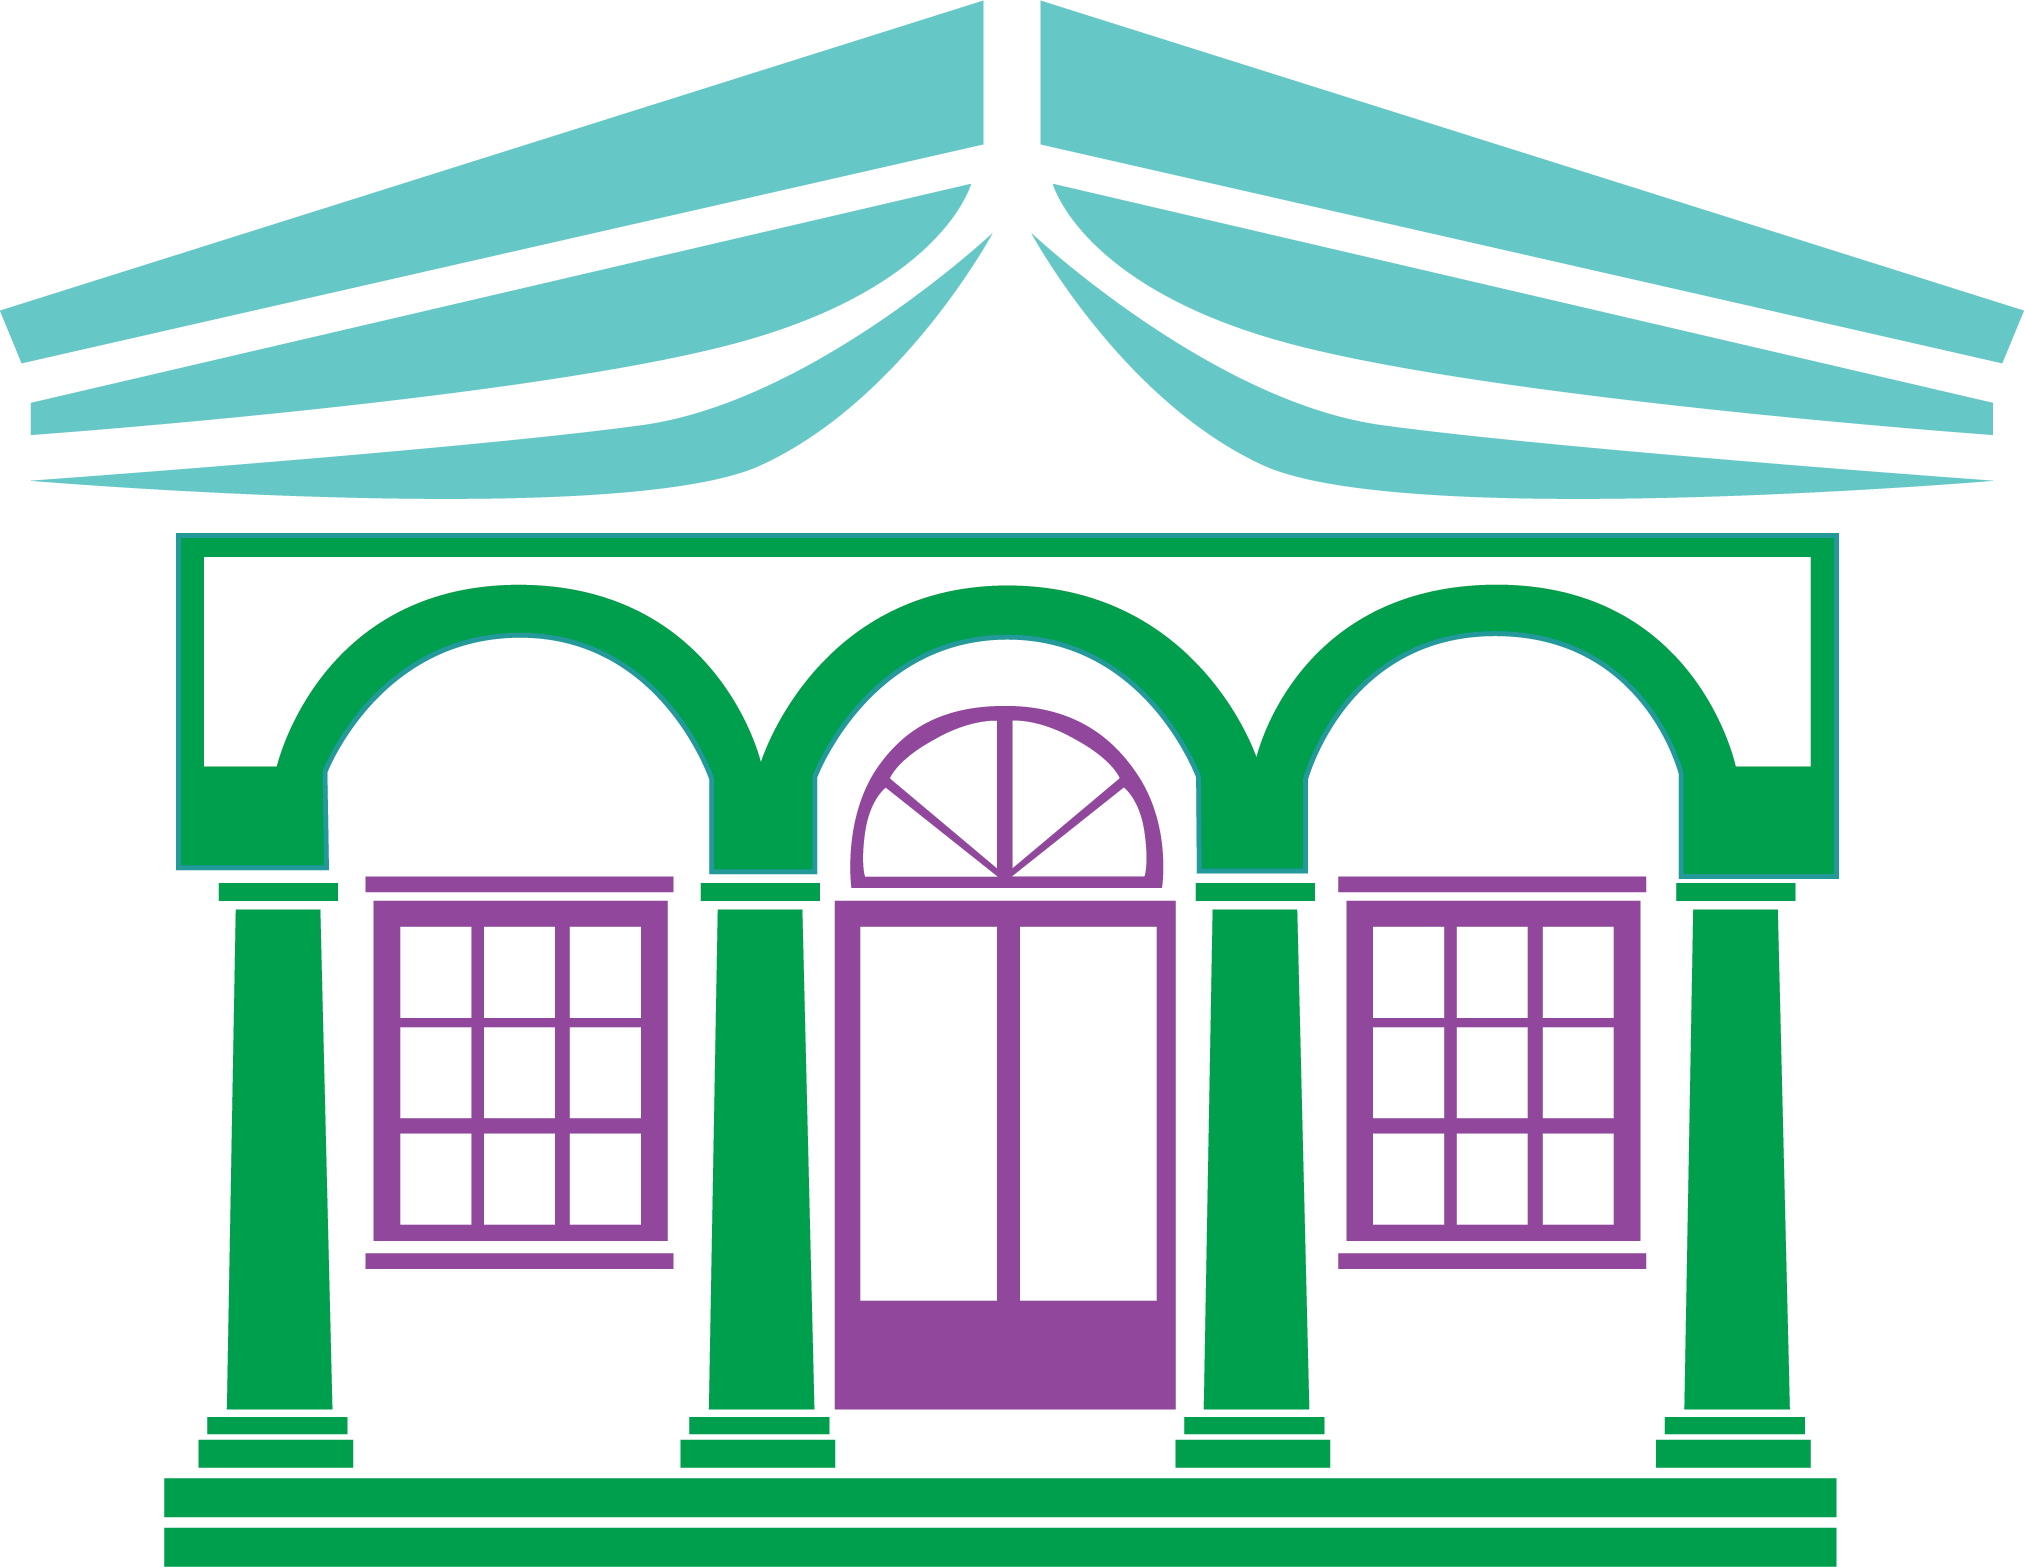 Hull house clipart graphic free library School Staff Directory / School Staff Directory graphic free library